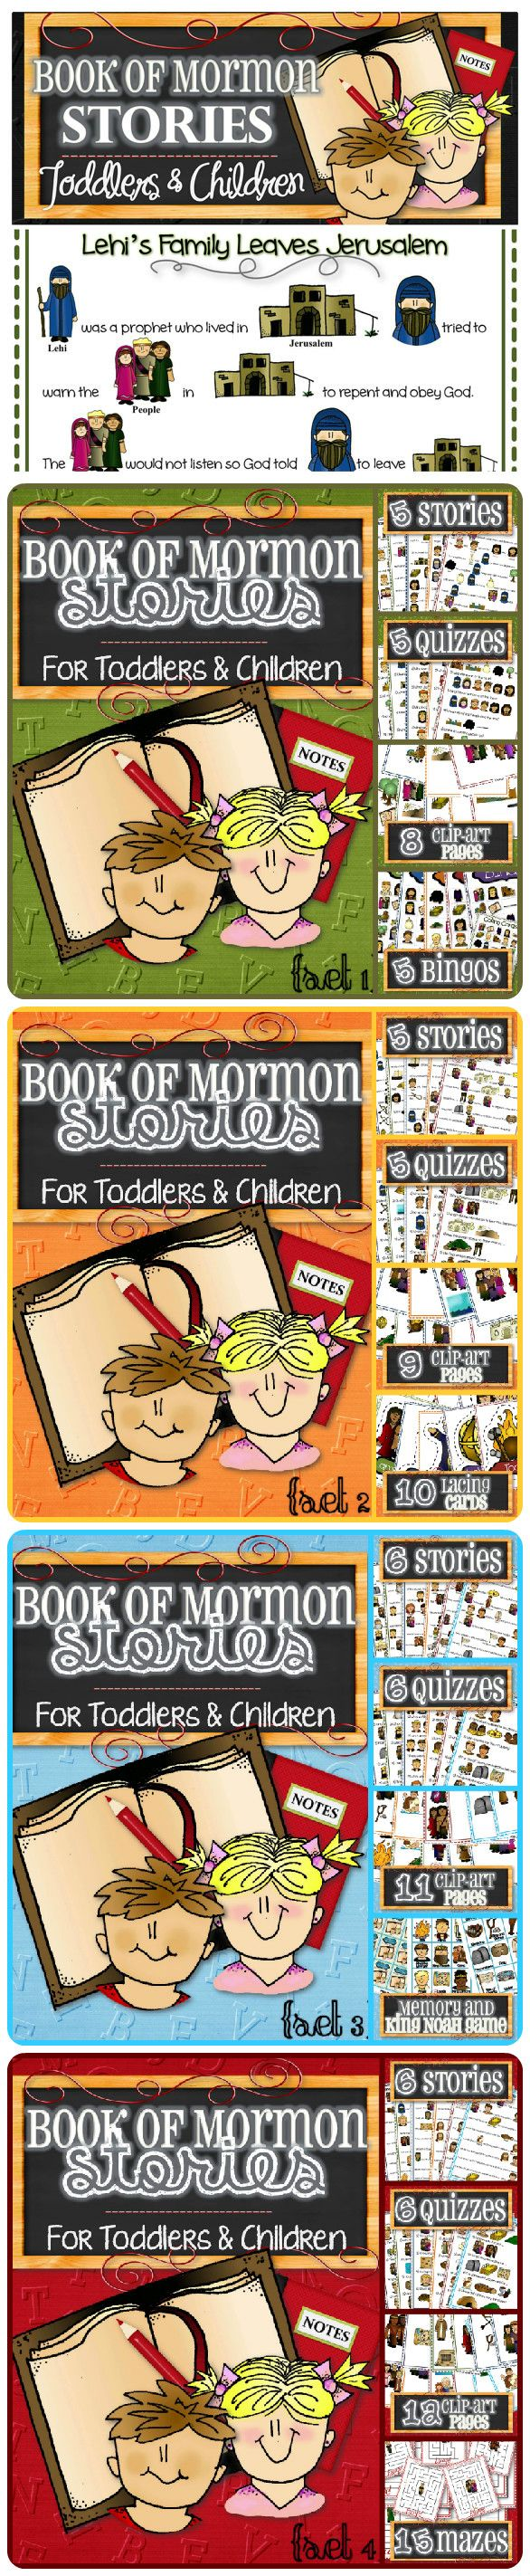 "Complete Book of Mormon Stories (For Toddlers and Children) - INSTANT DOWNLOAD - An easy and fun way to teach toddlers and children Book of Mormon Stories. These colorful pages with over 20 stories make it simple, interactive and keep little ones engaged!  Each Set Includes: - Simplified Stories - Fun Quizzes - Clip-art and Graphics - Games and Activities - Character Guide. Get ""Lehi's Family Leaves Jerusalem"" and quiz for FREE!"